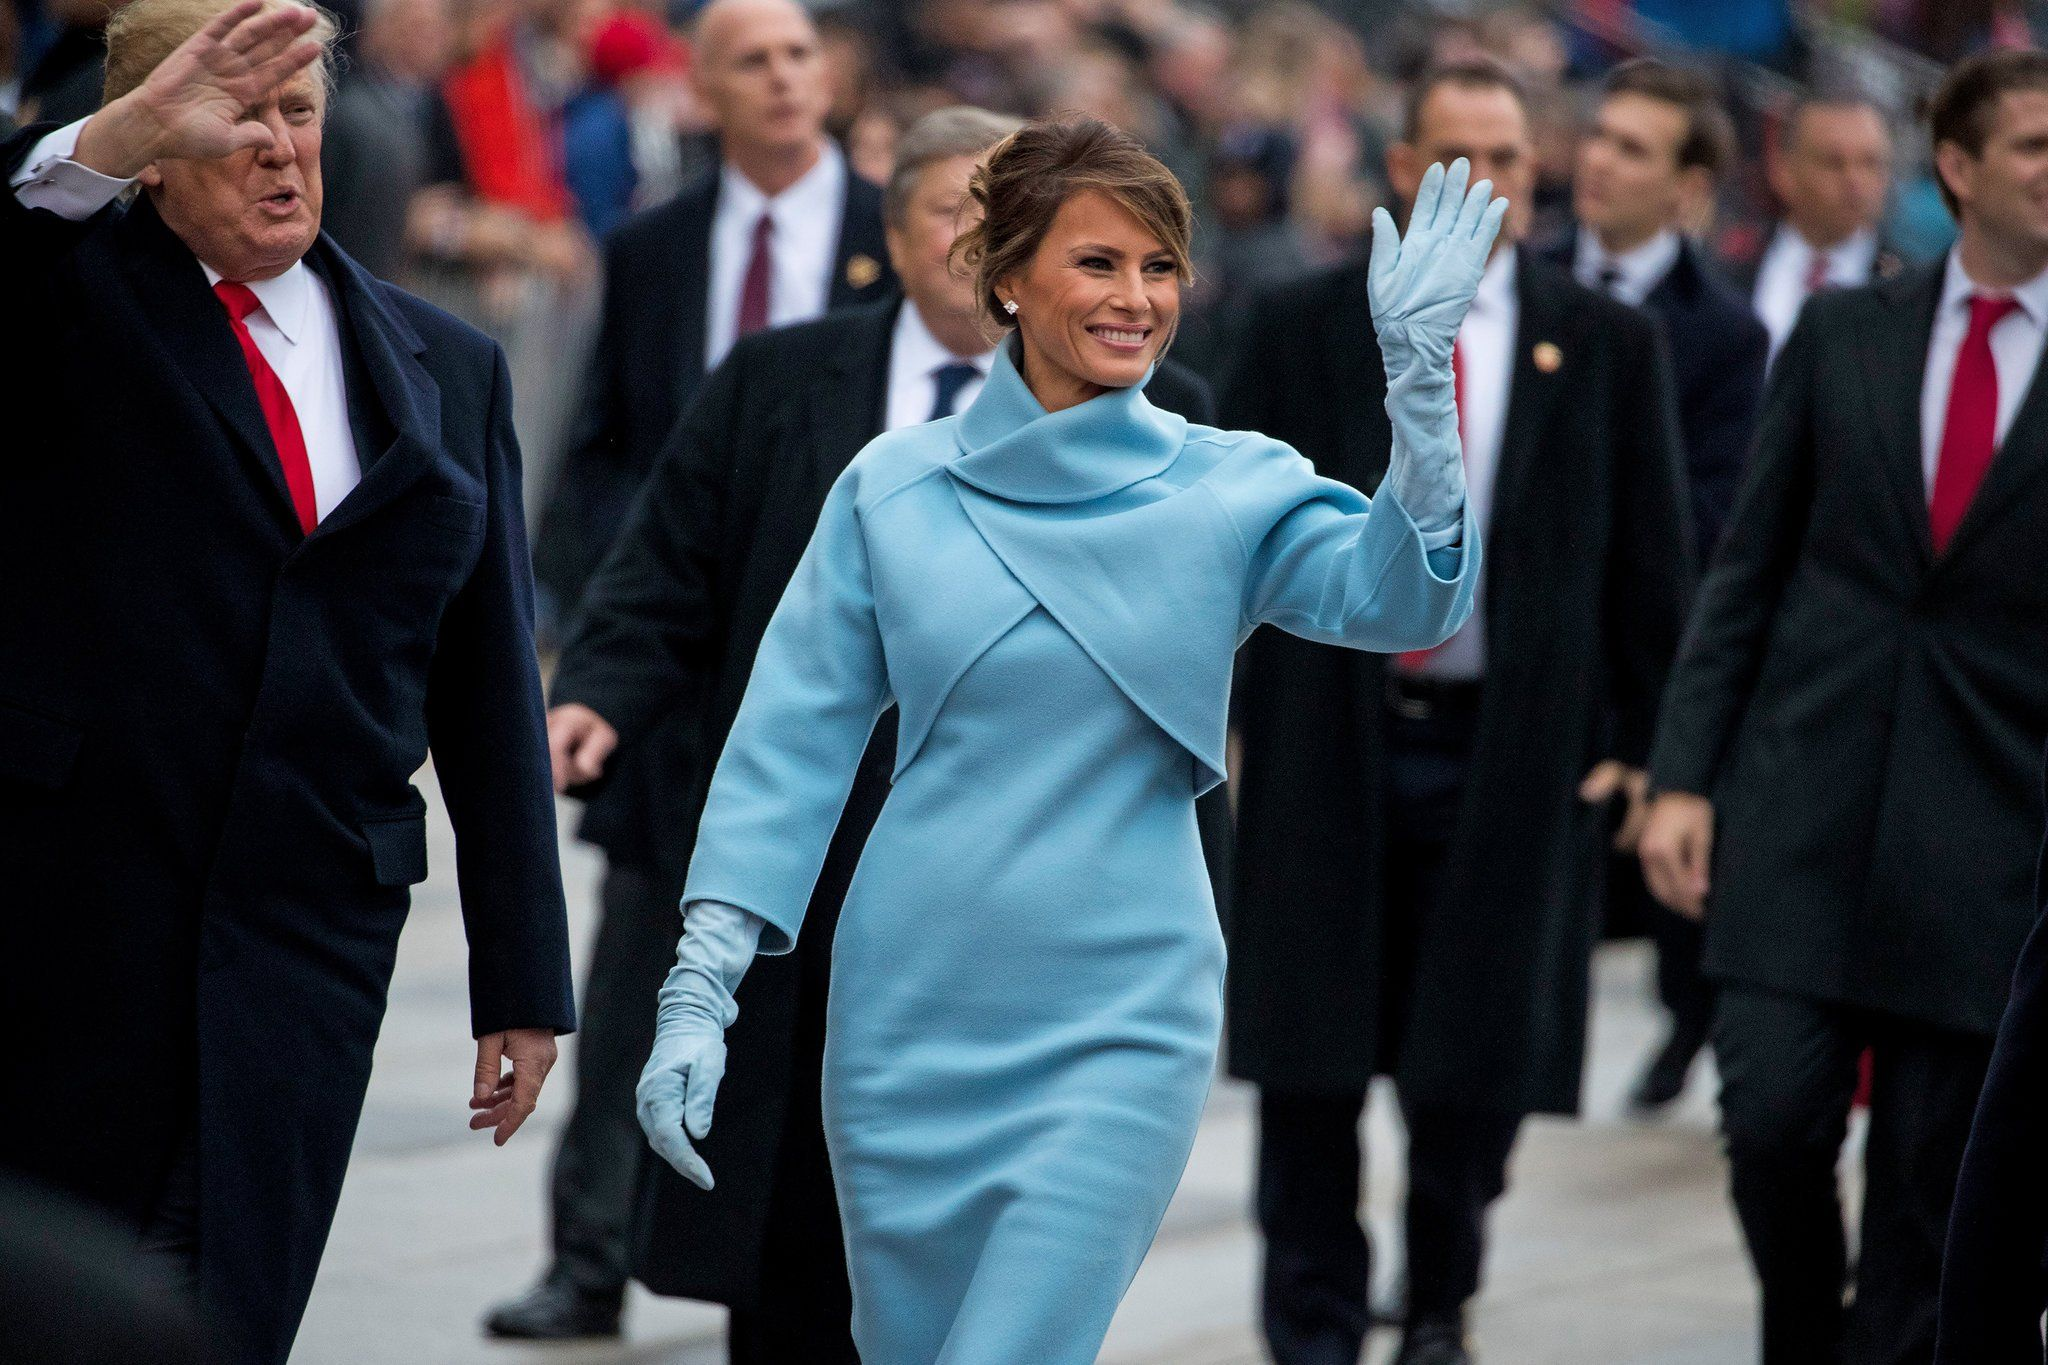 Melania waves to people during Inauguration Day